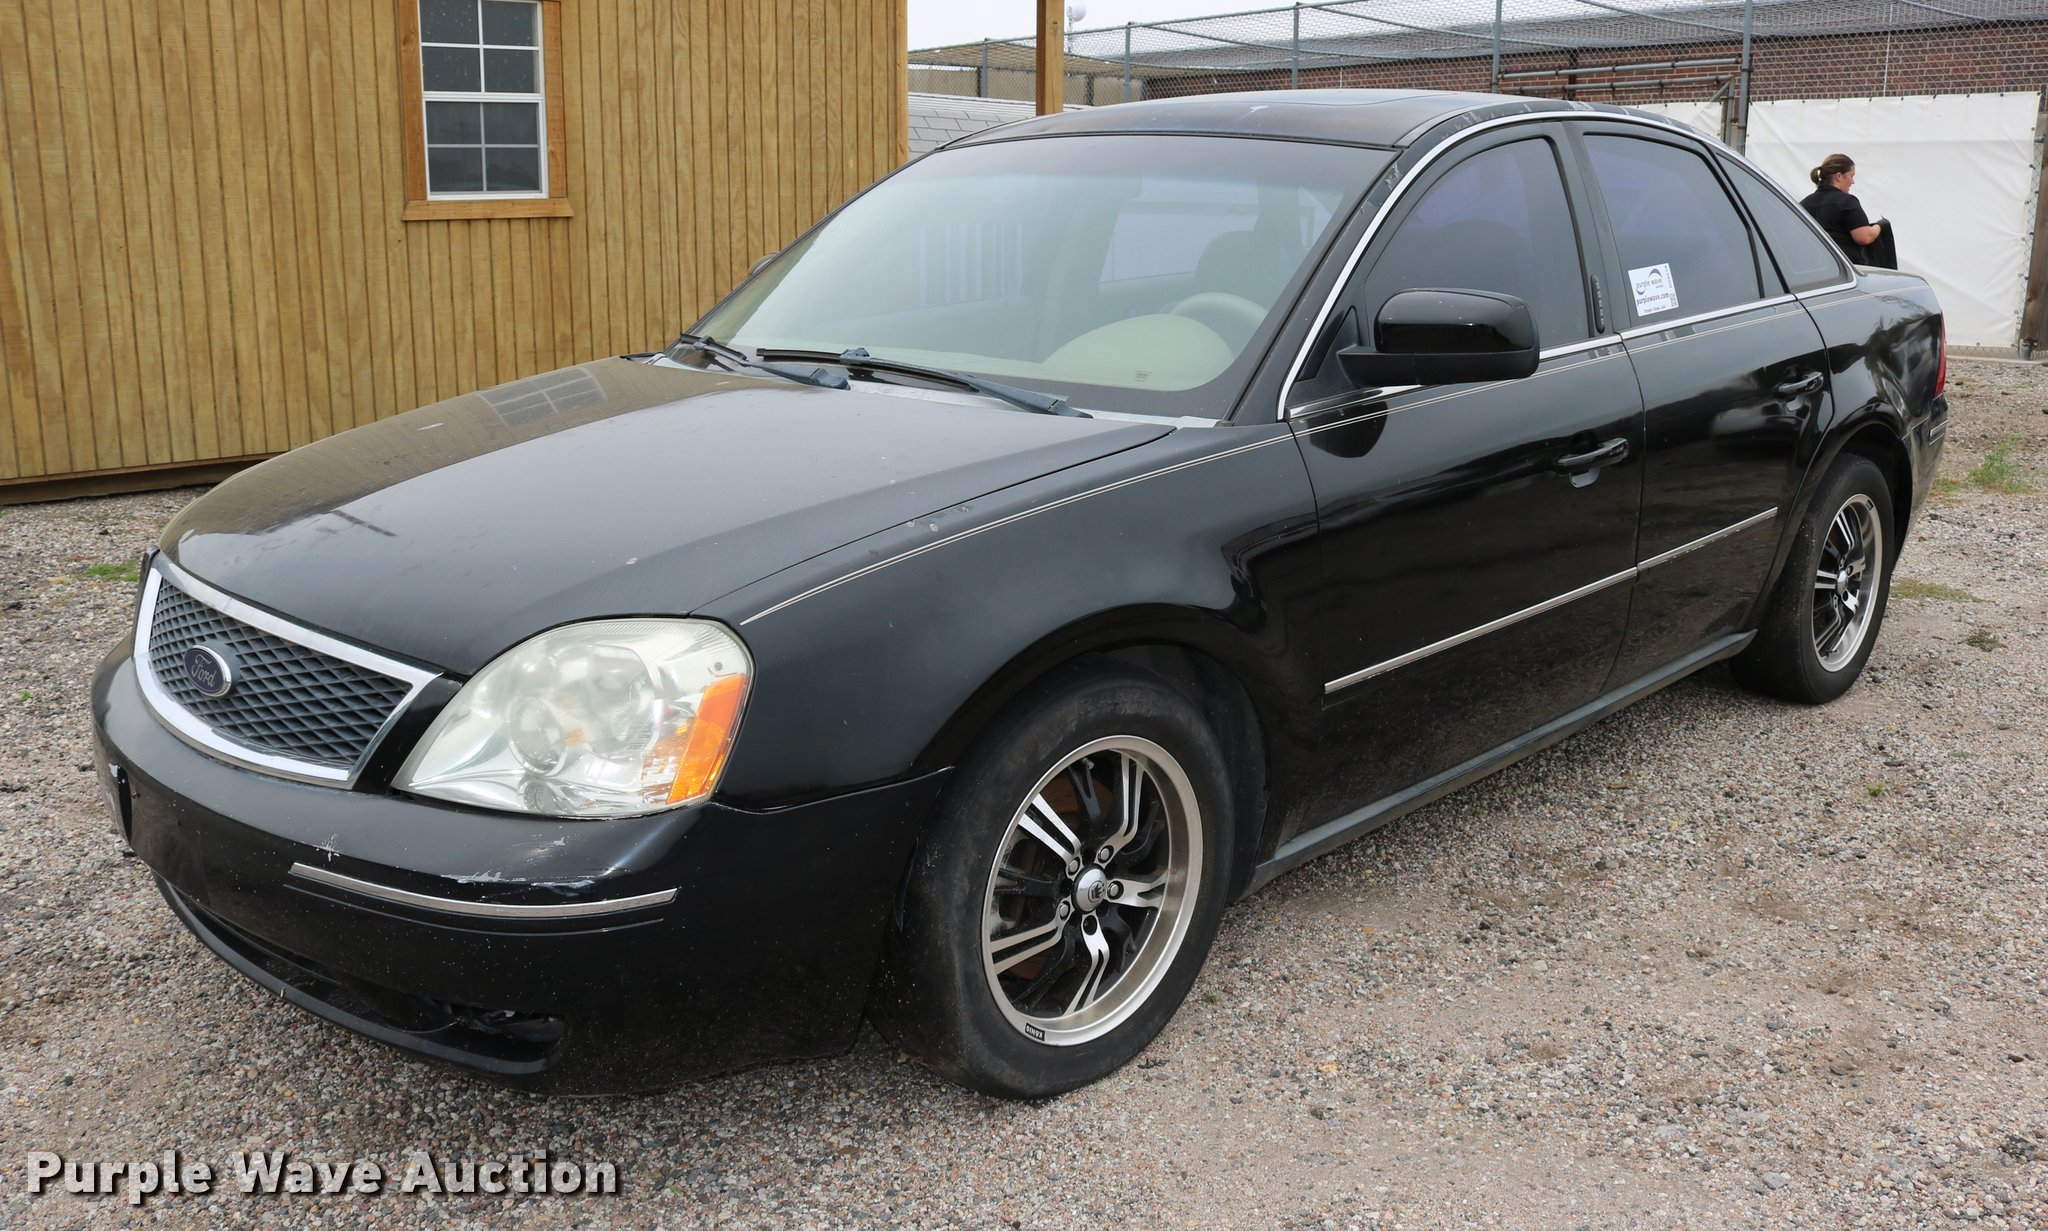 Dd0219 image for item dd0219 2005 ford five hundred